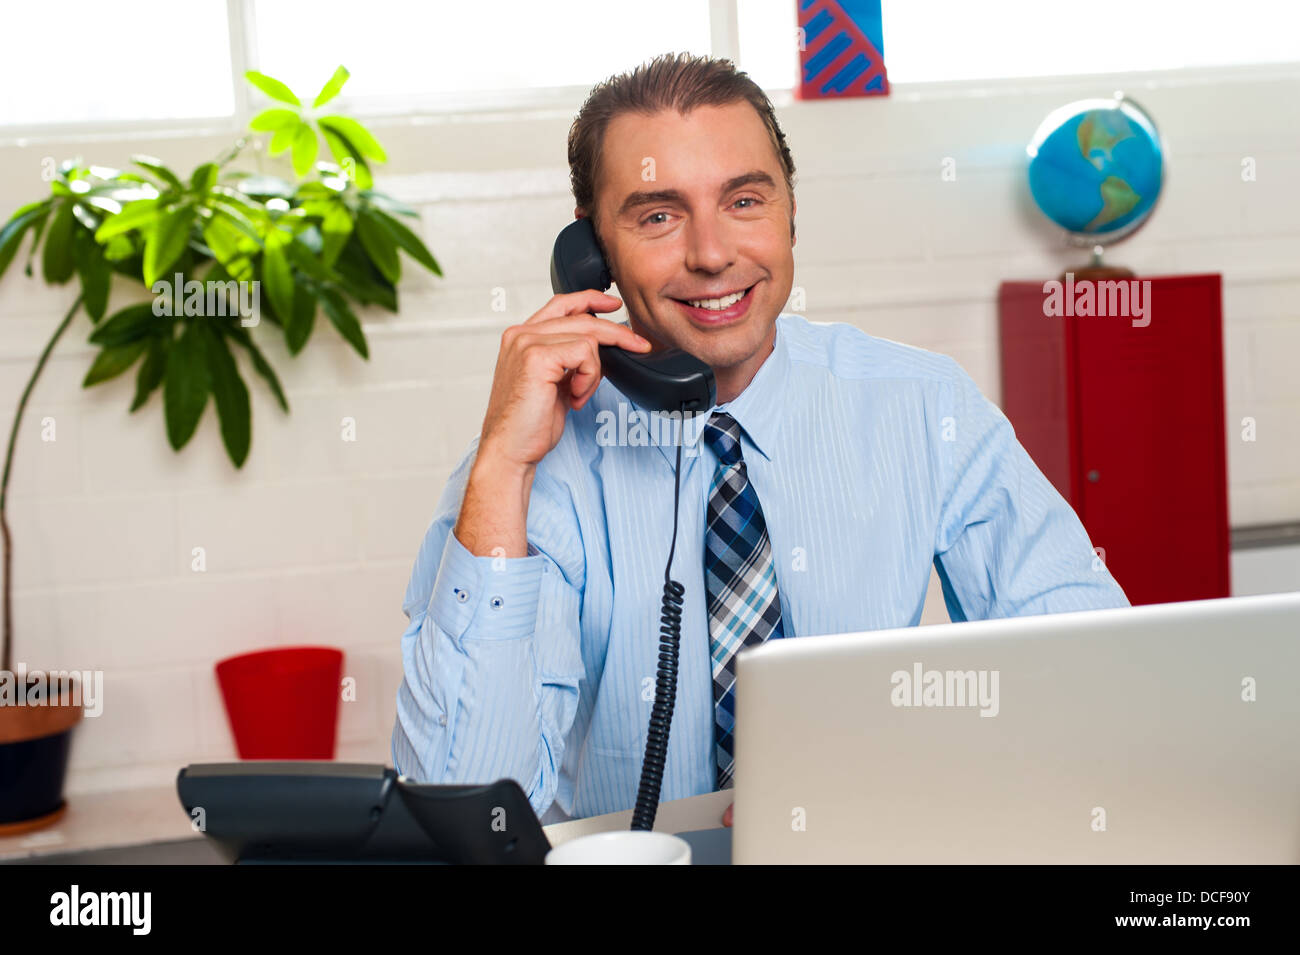 Smiling manager engaged in business interactions over a phone call. - Stock Image